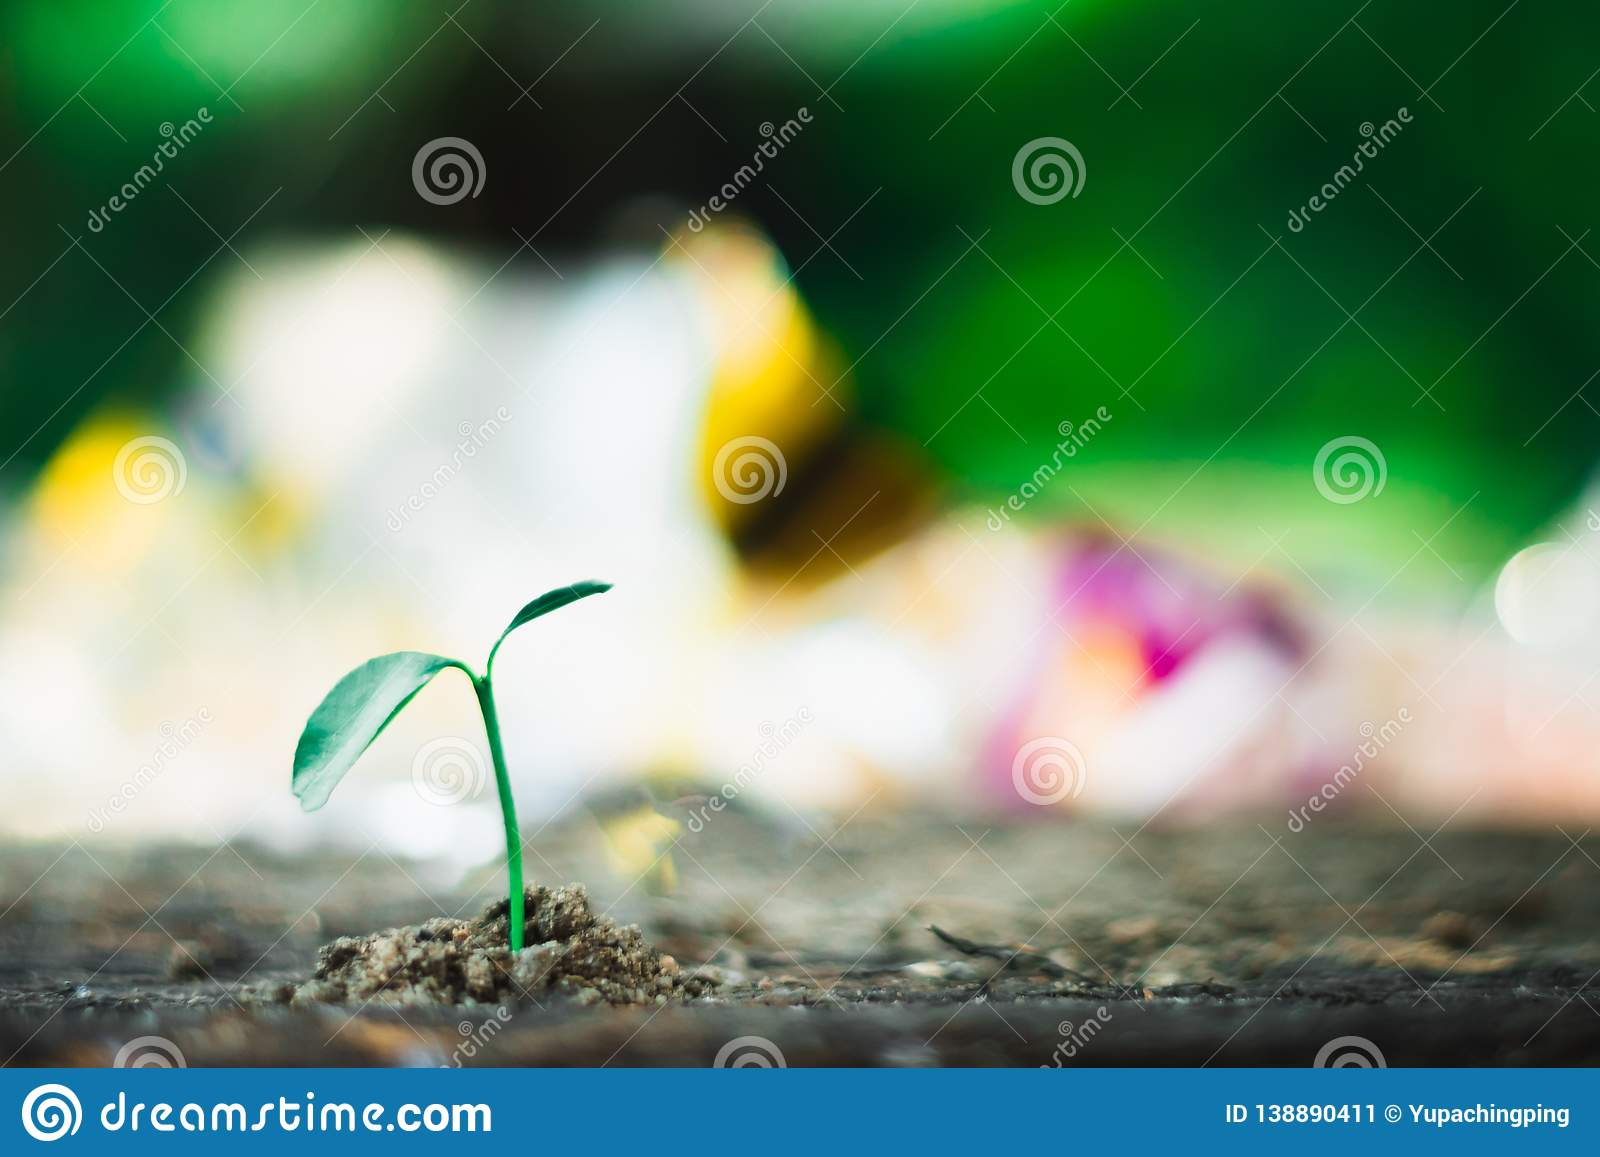 sprout growing on ground